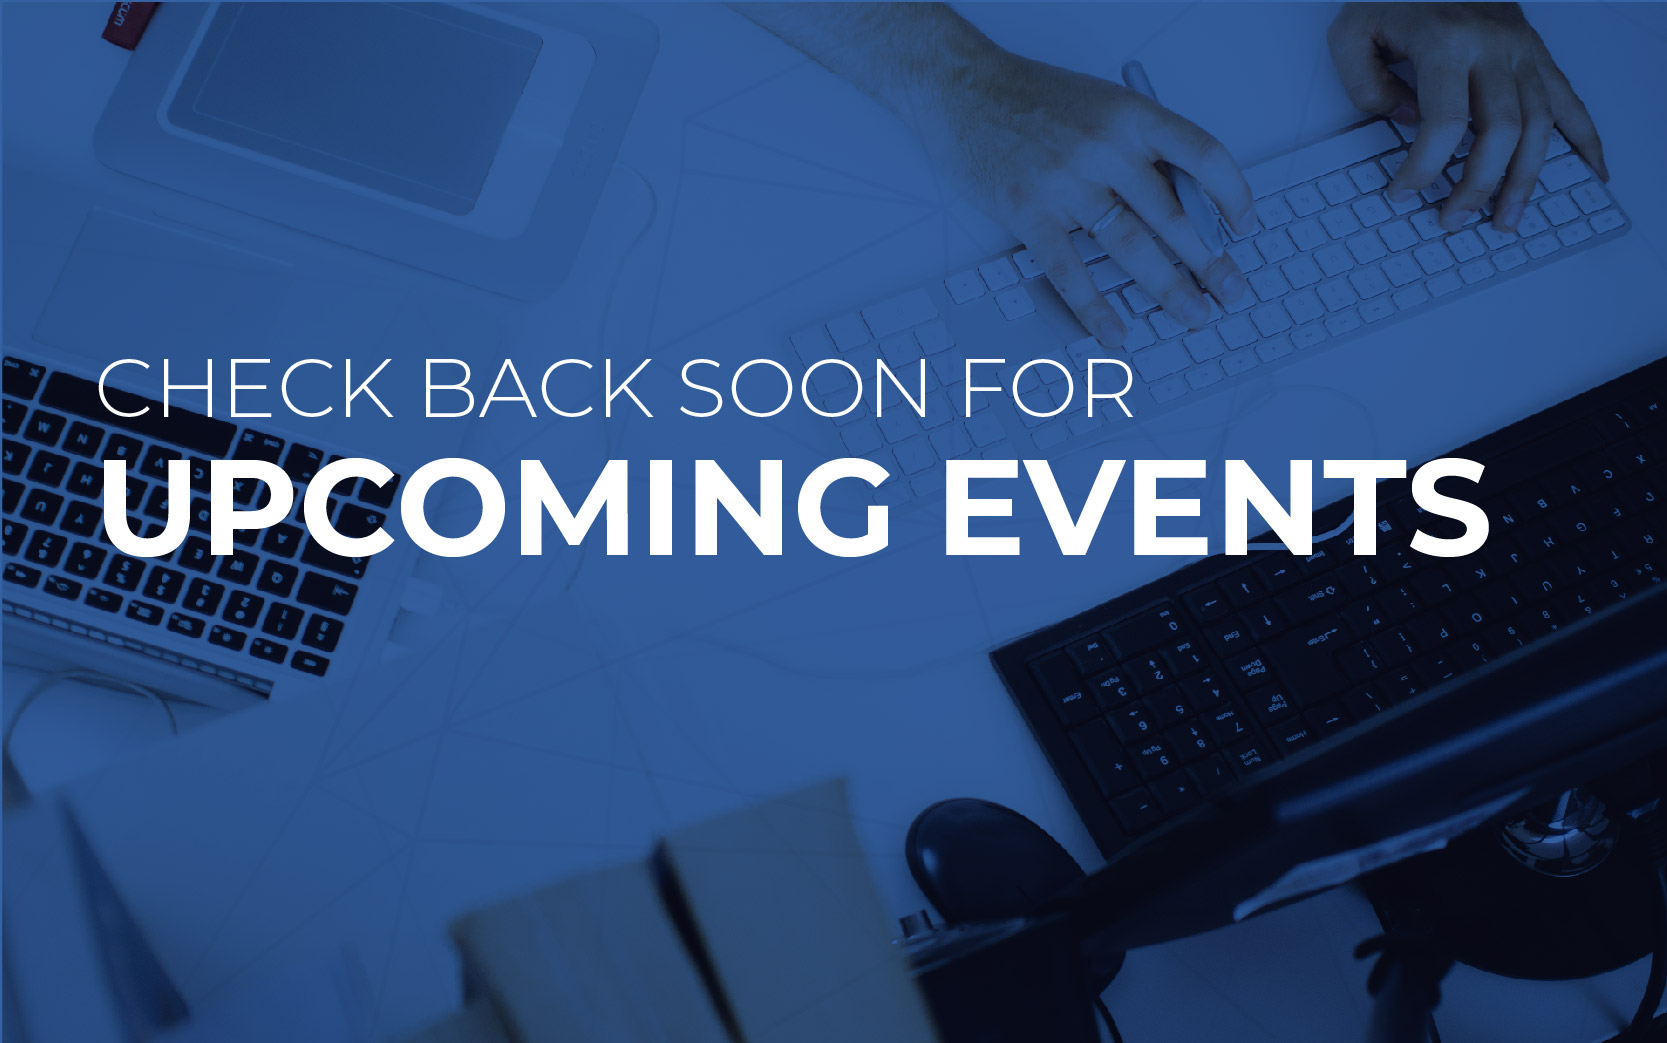 Check back soon for upcoming events.